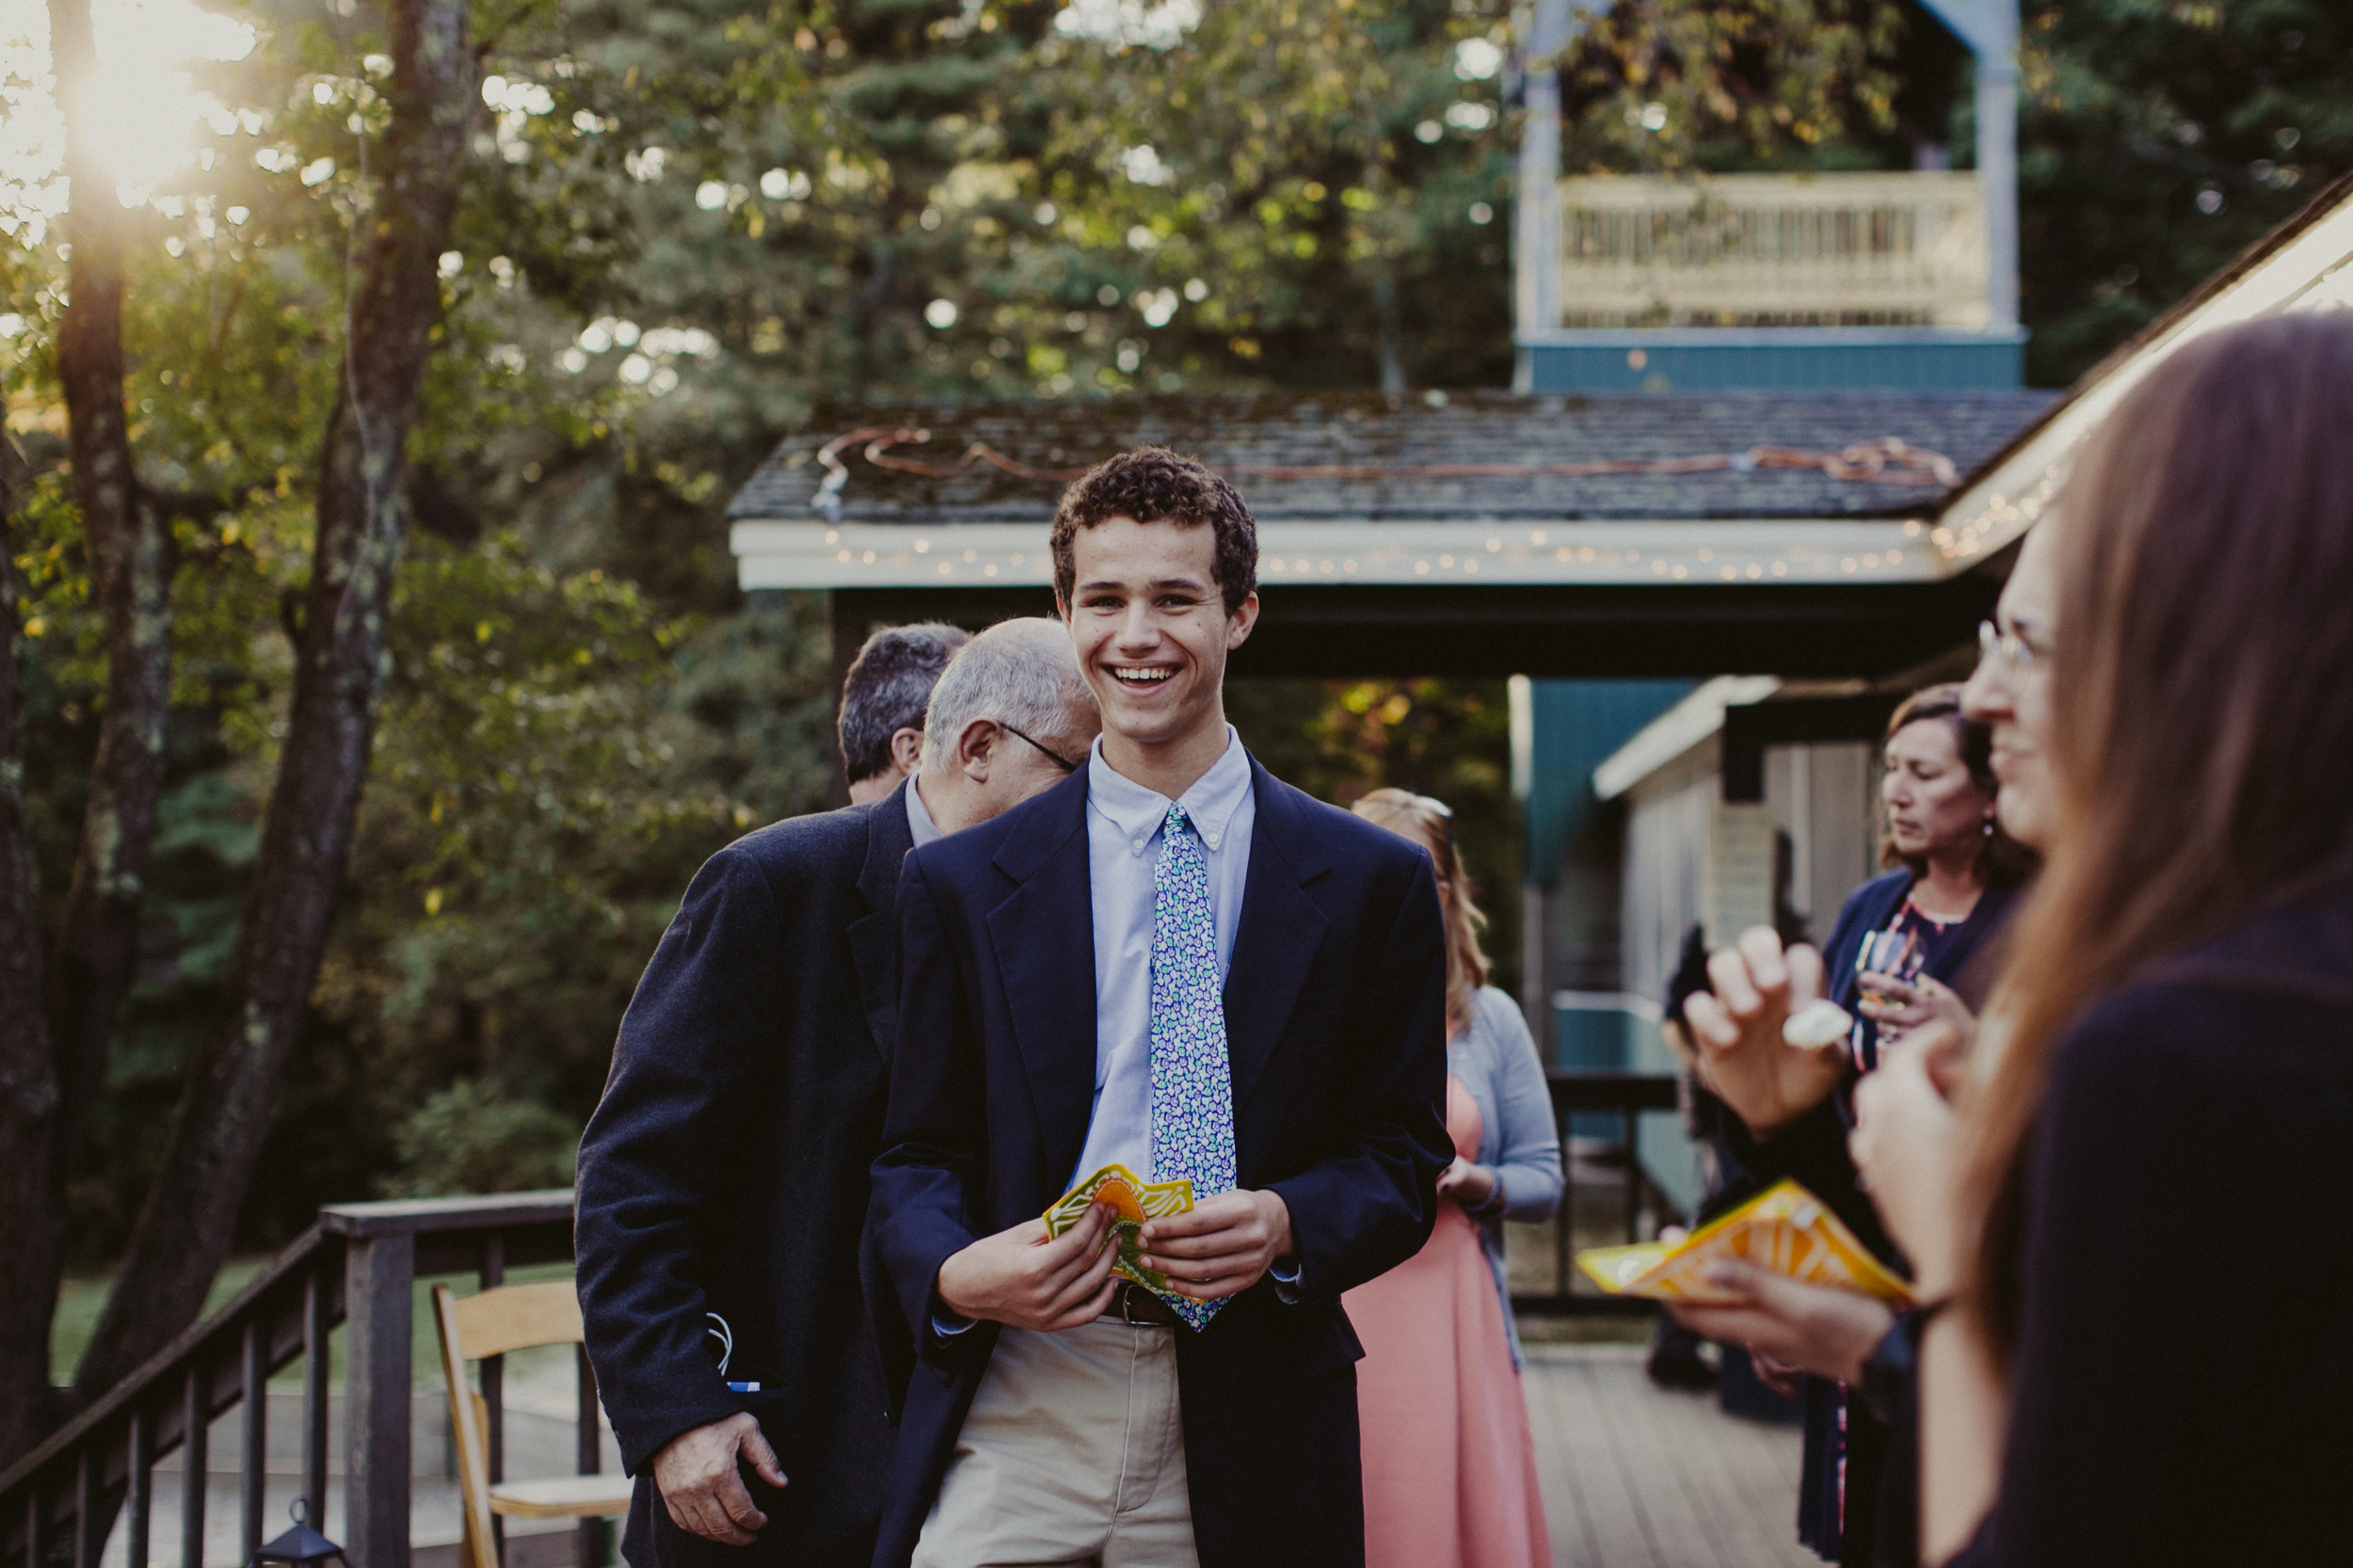 windsor mountain summer camp wedding NH chellise michael photography 1796.jpg